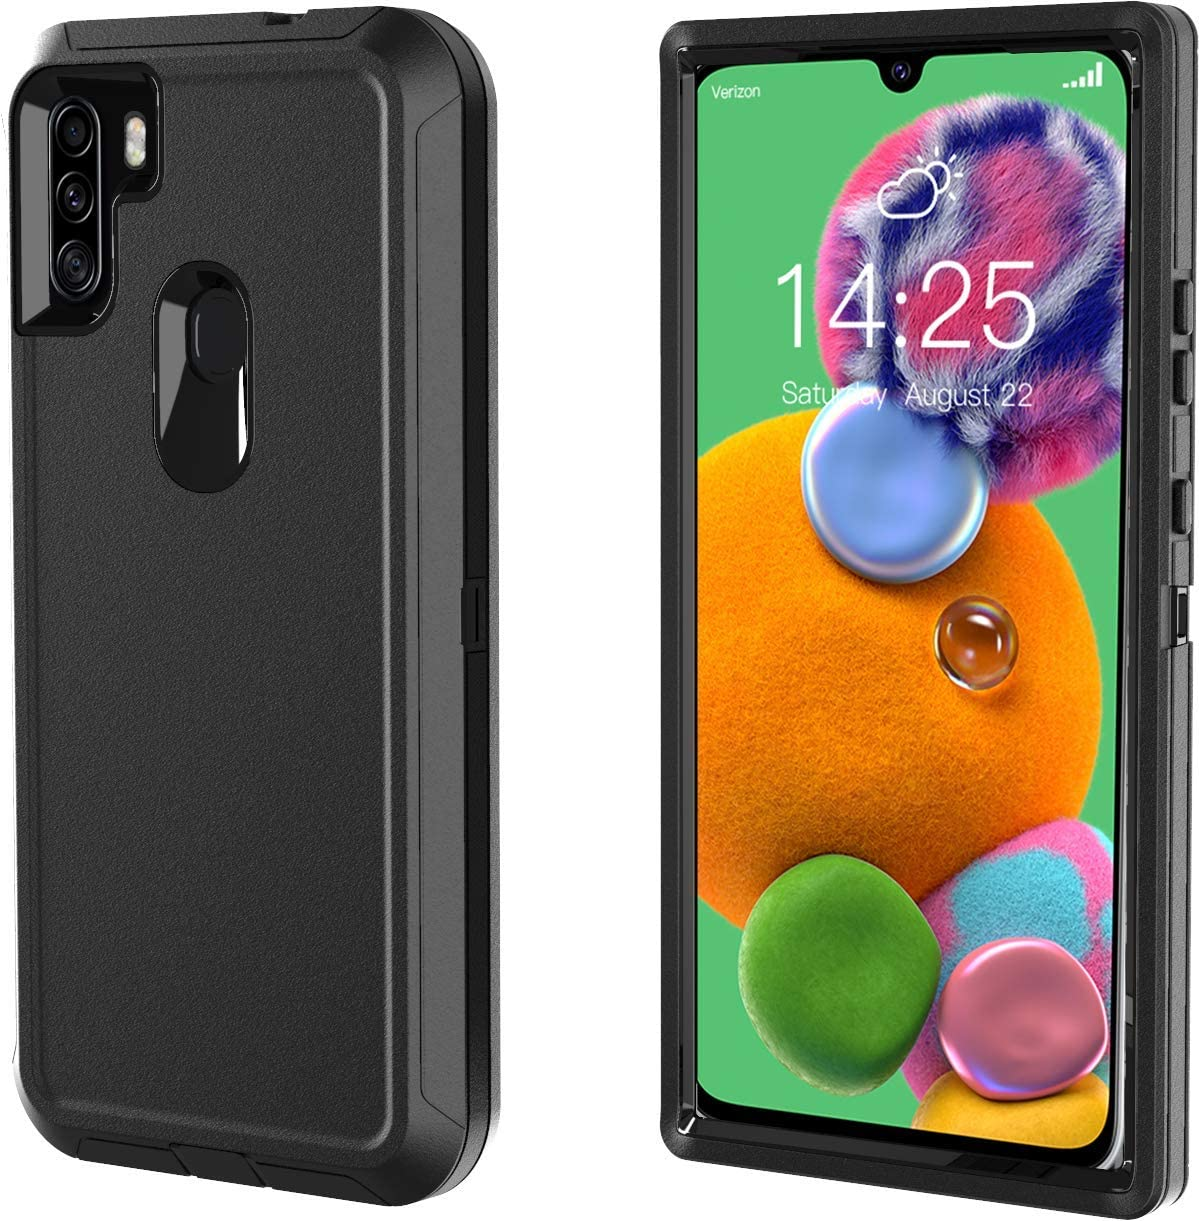 Phone Case for Galaxy A11- Dual Layer Full Body Shockproof High Impact Protective Hard Plastic Soft TPU with Tough Phone Cover Cases for Samsung A11 Case (Black)